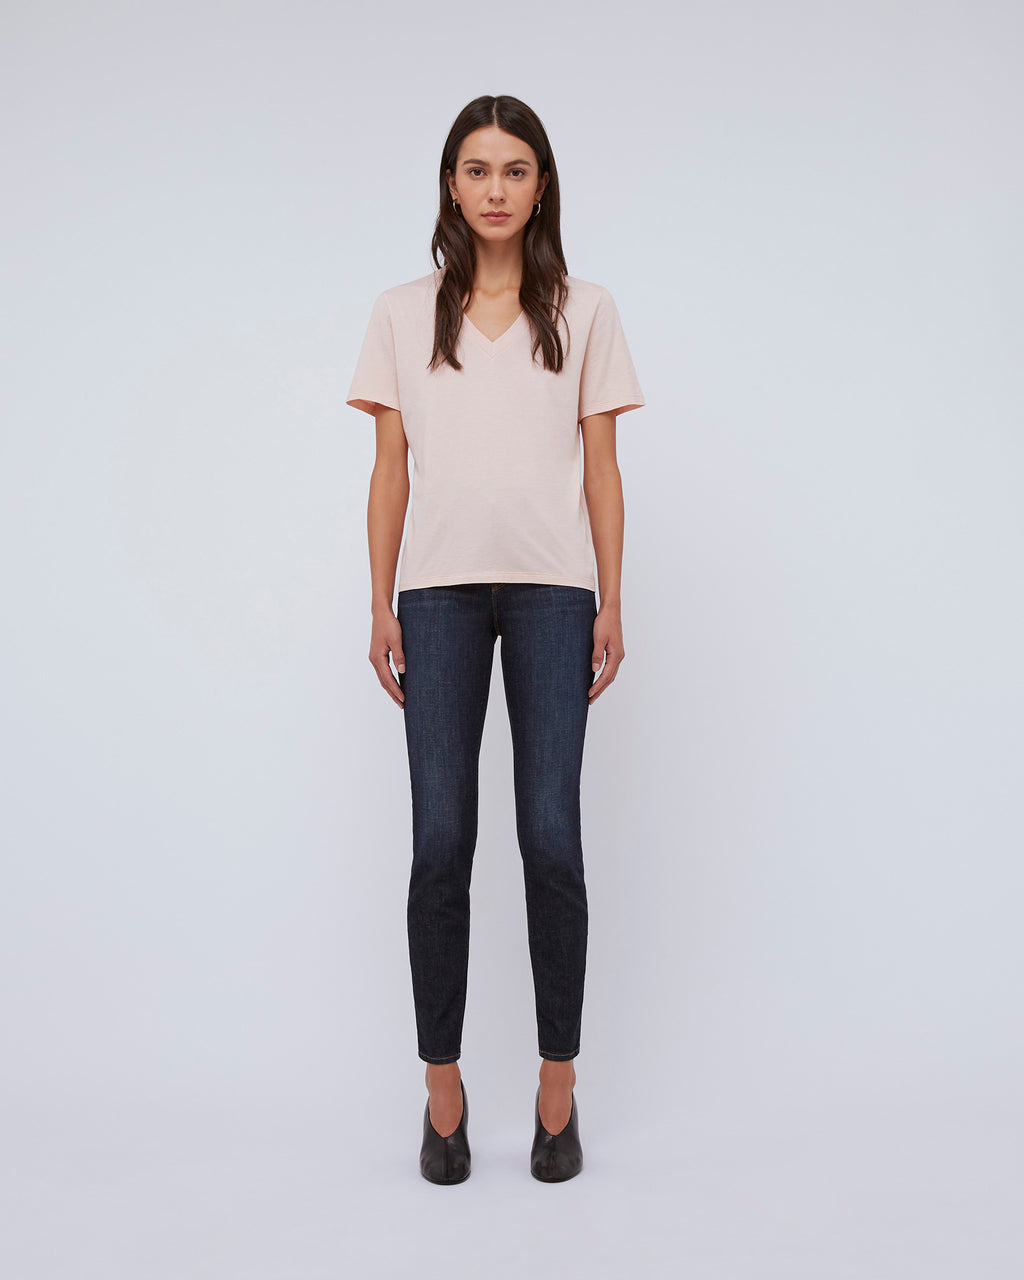 The Short Sleeve V-Neck-Tee-in-Peachskin